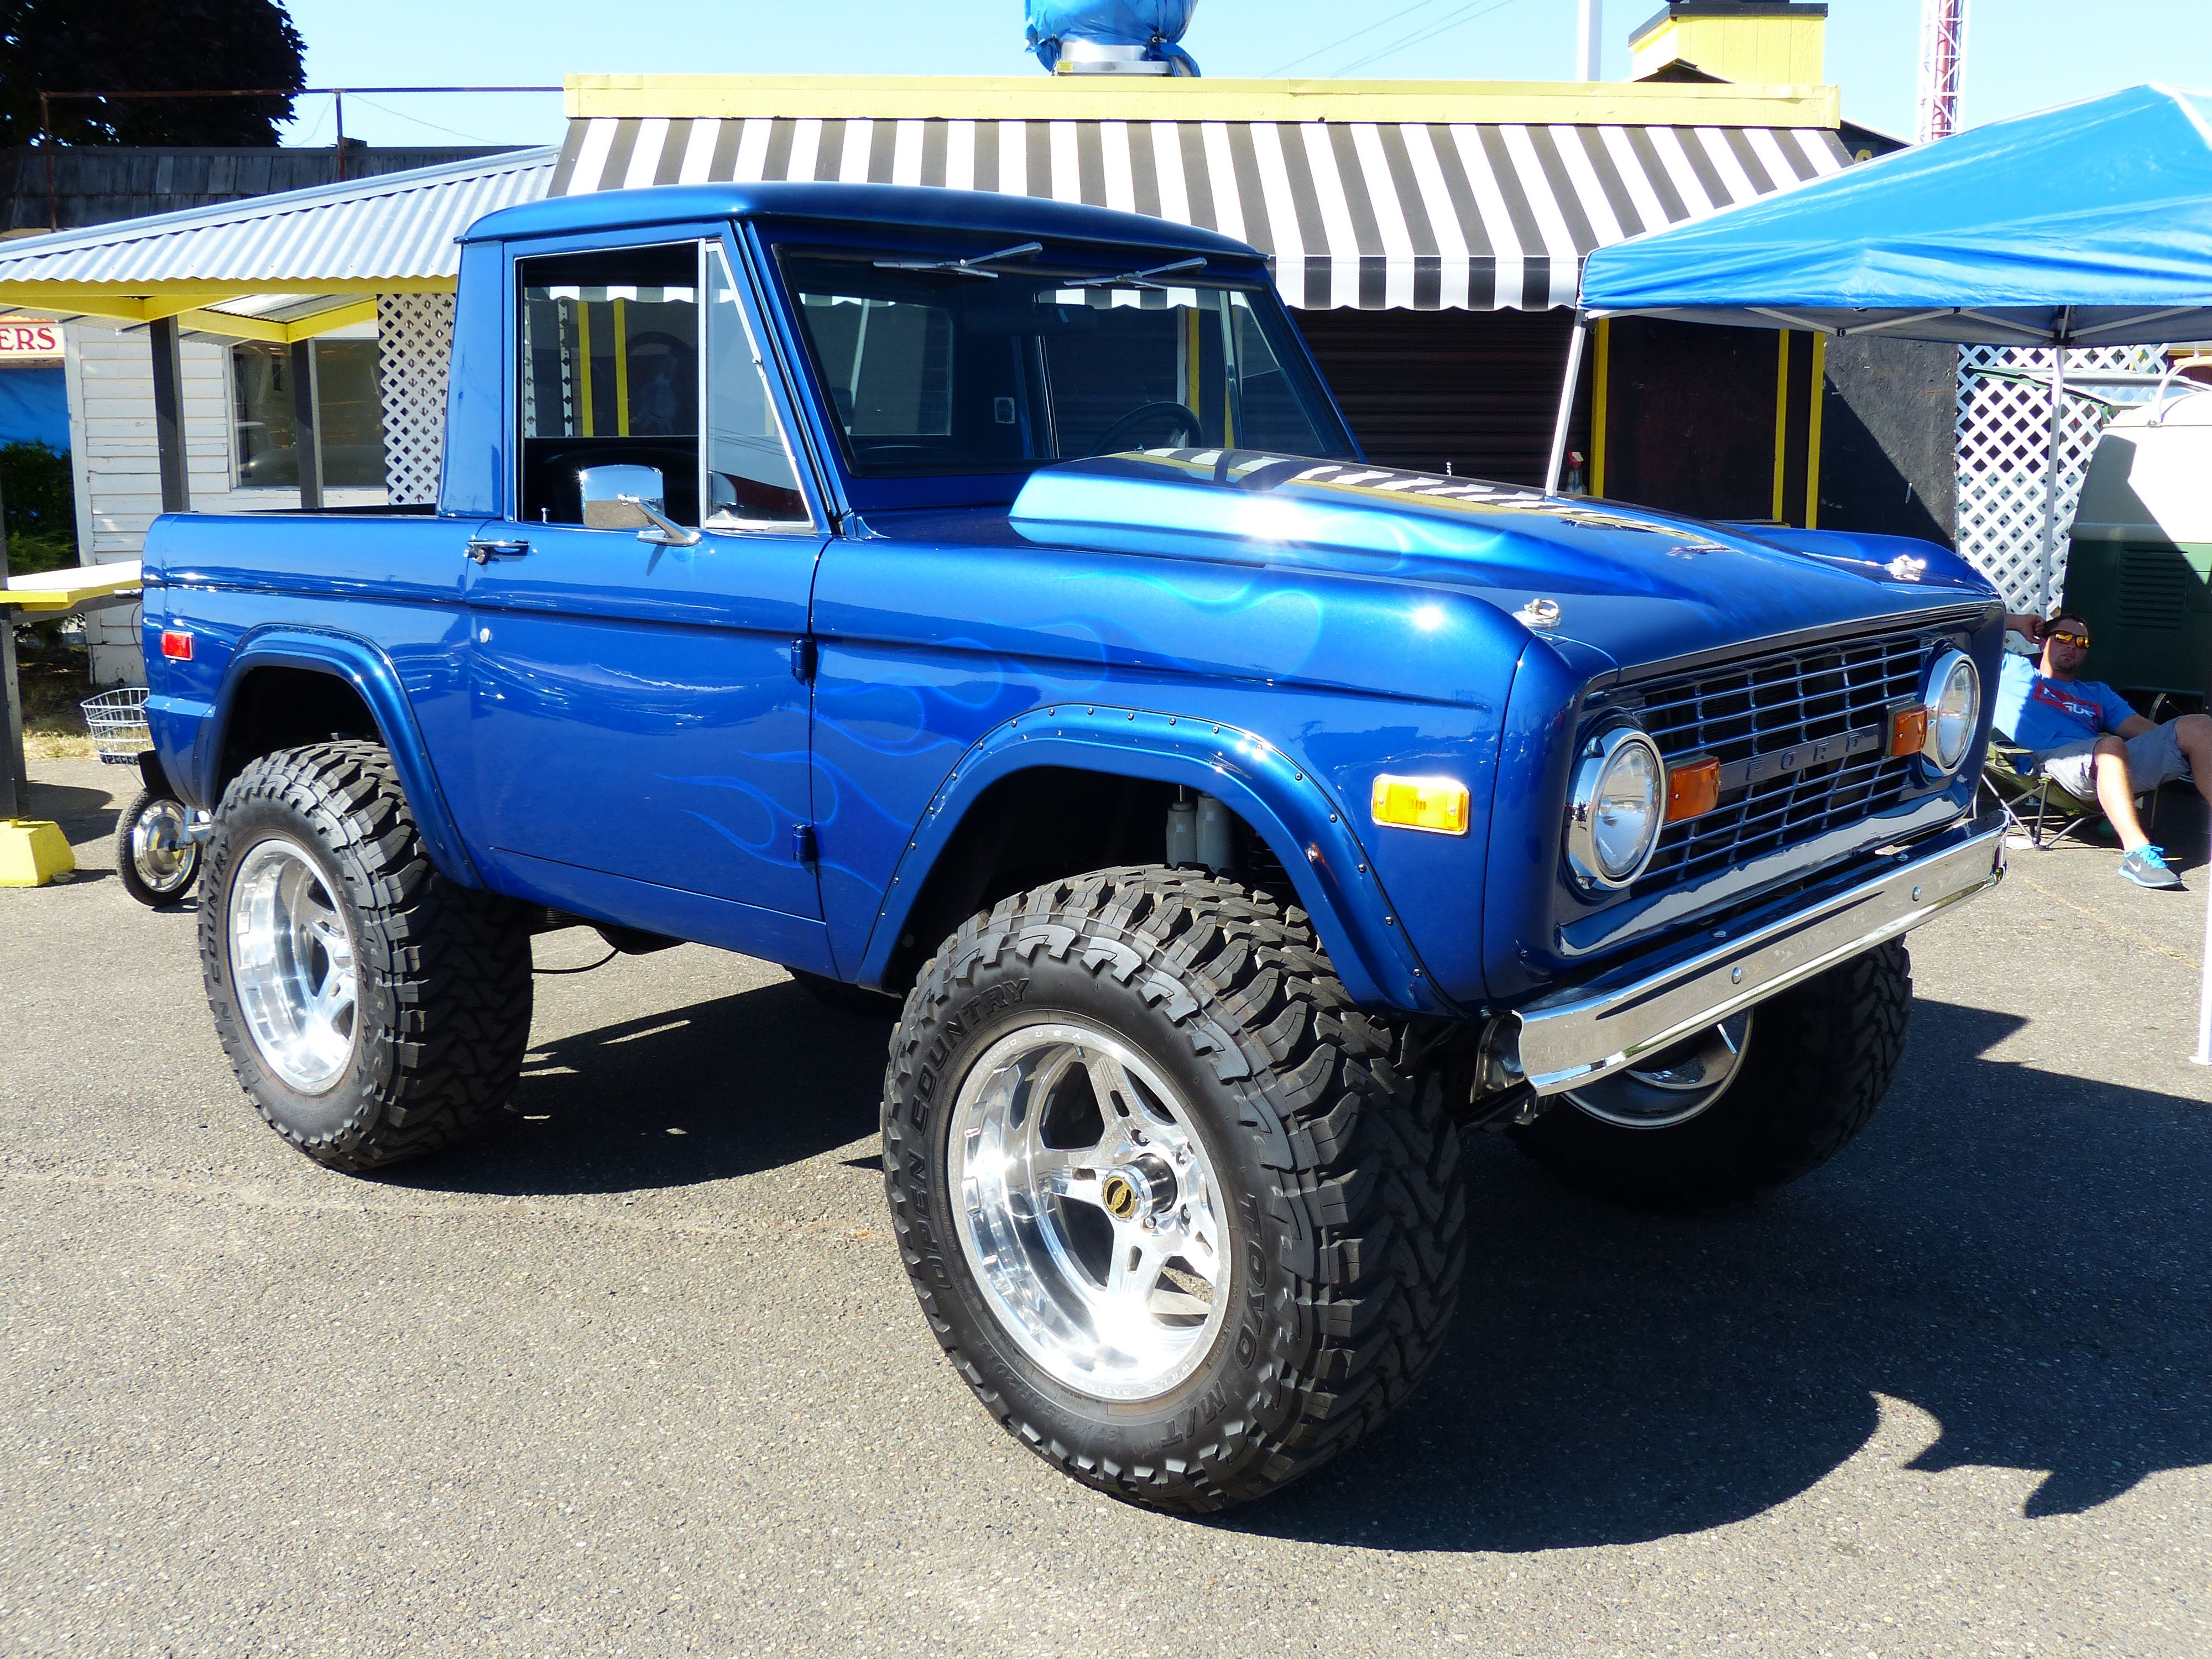 Blue Ford Bronco Ford bronco, Old ford bronco, Classic